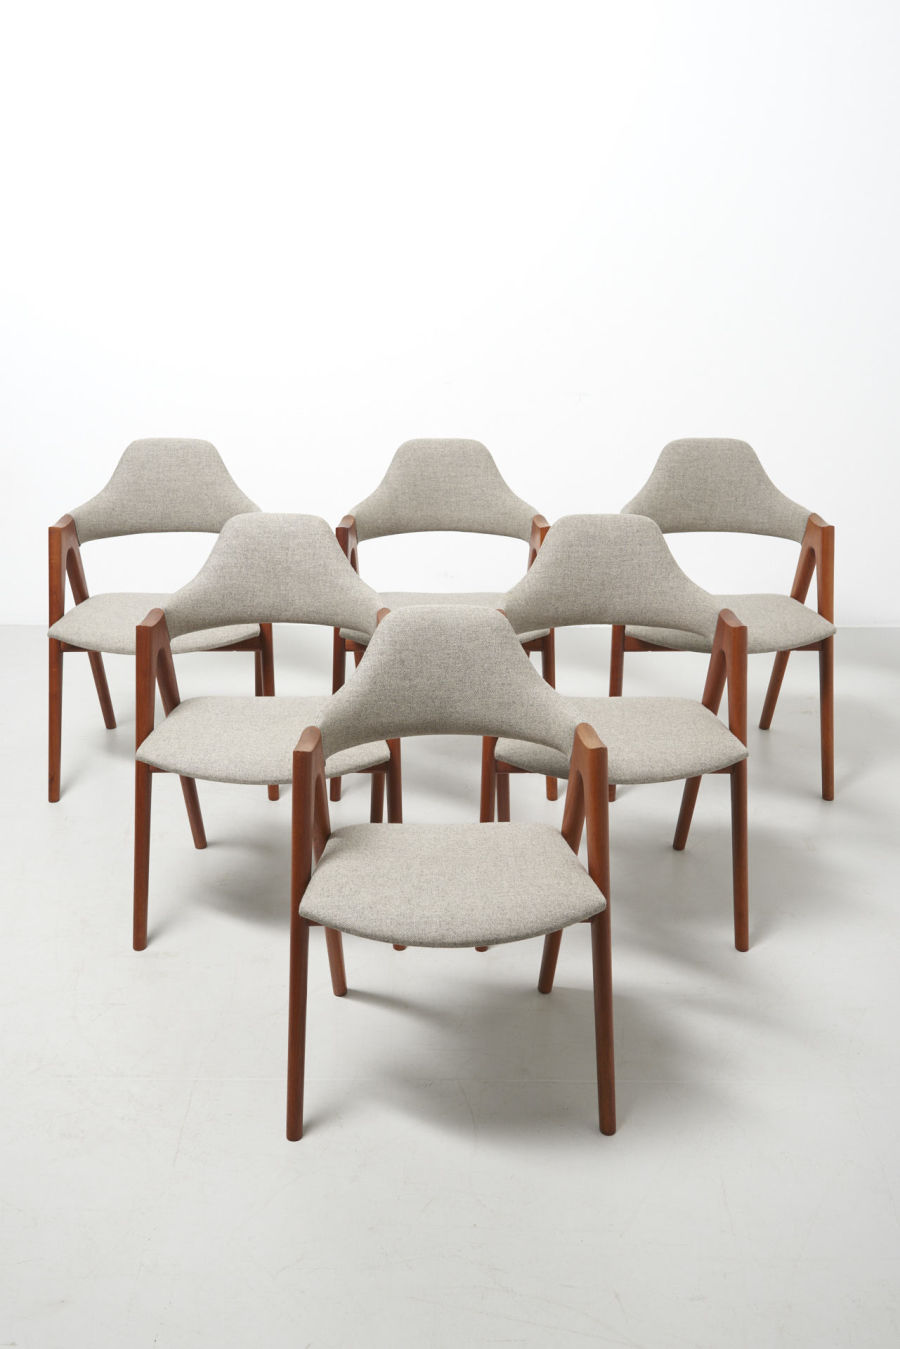 modestfurniture-vintage-2206-kai-kristiansen-compass-chairs01